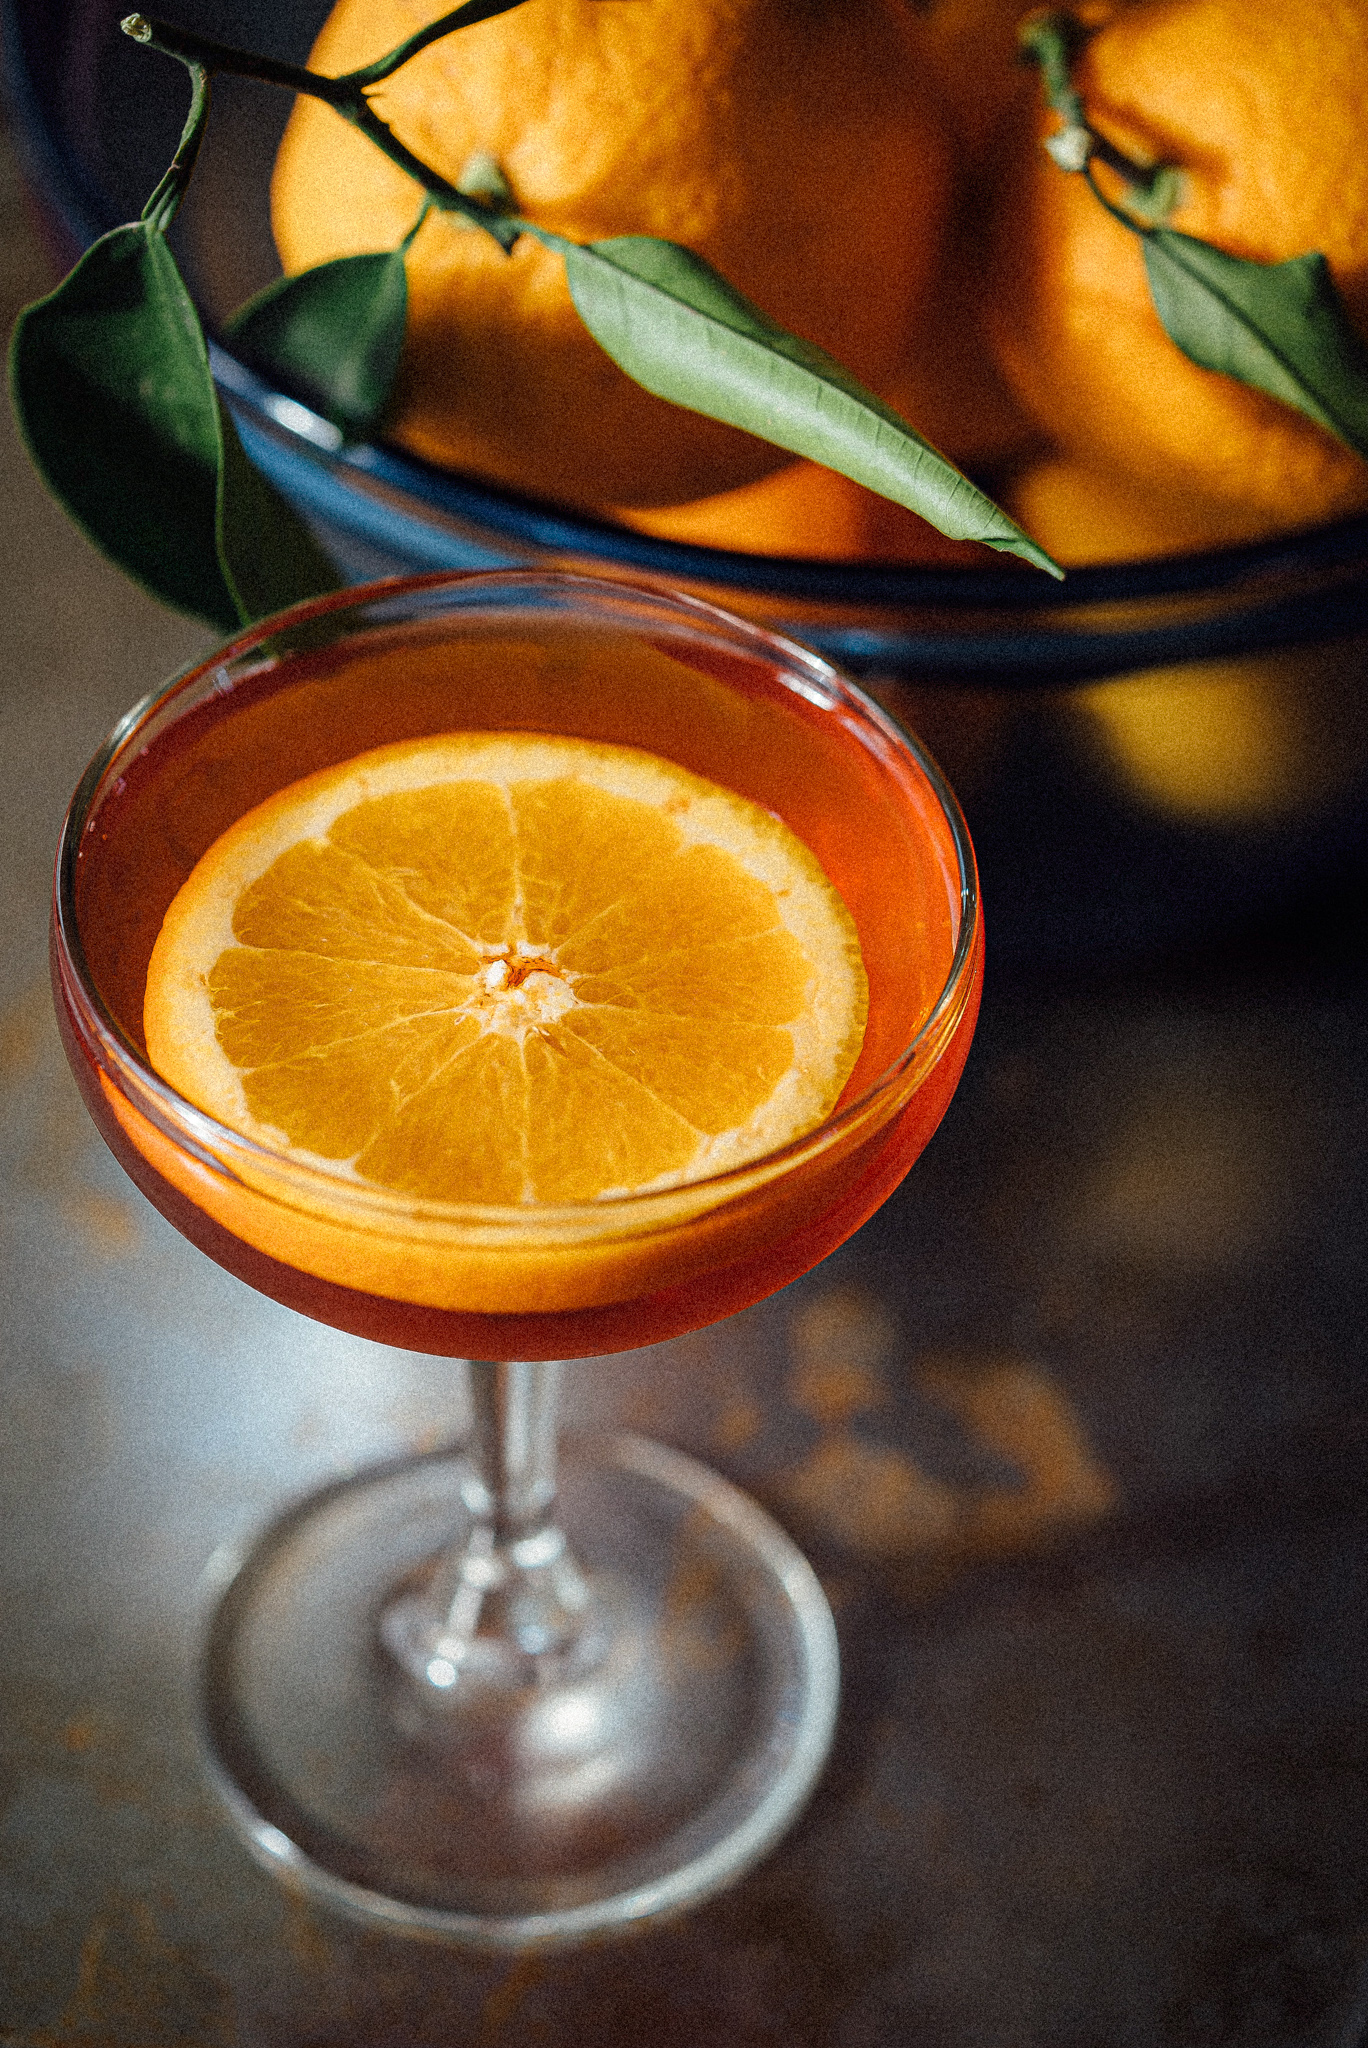 Closeup of cocktail with slice of orange next to a bowl of whole oranges with stems and leaves